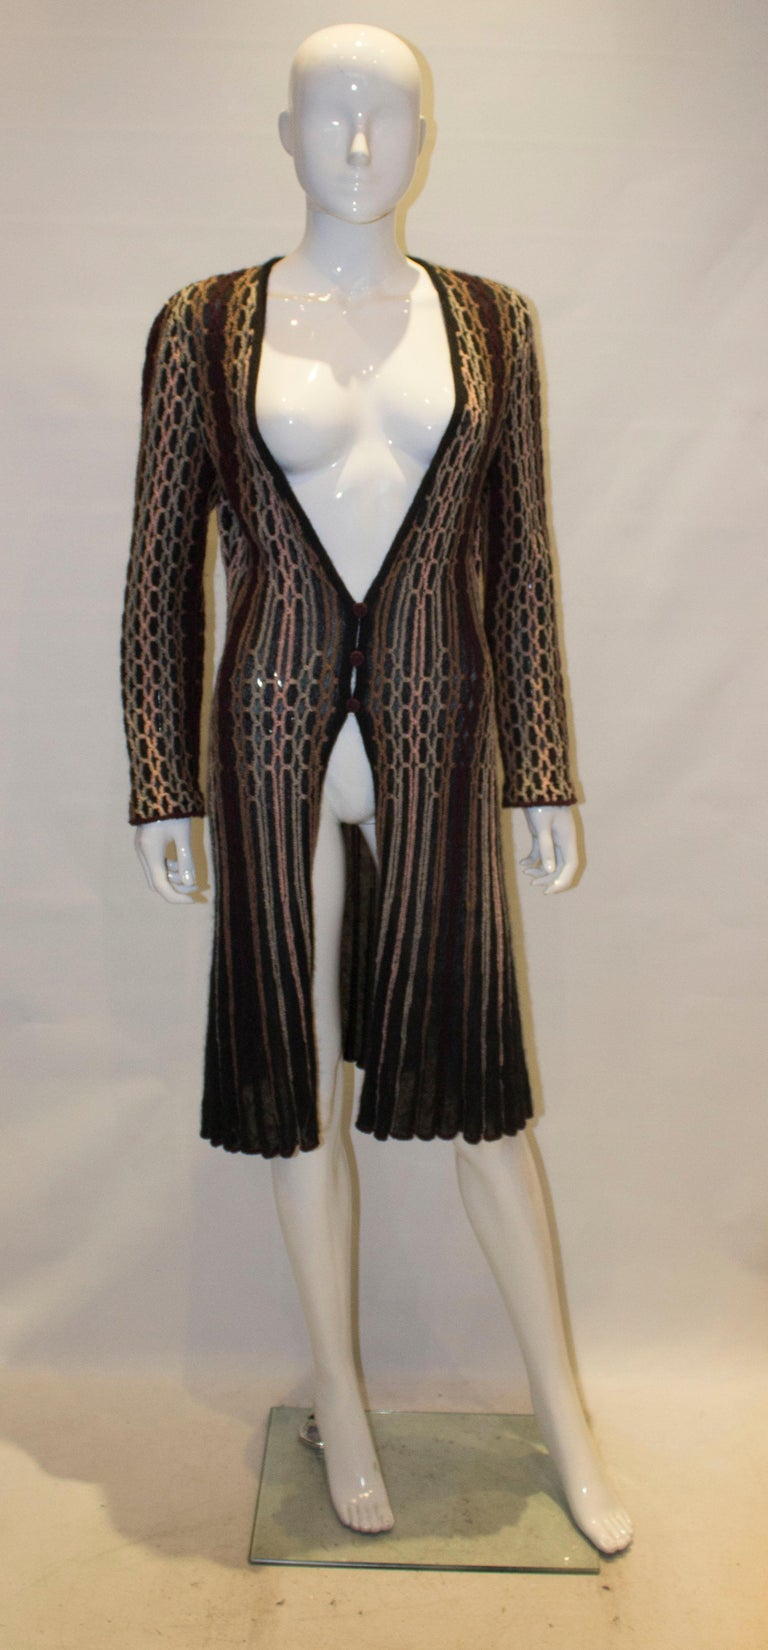 A vintage Missoni Brown Label Cardigan /Jacket . The jacket has a black background with multicolour stripes, a v neckline and a three button front opening.